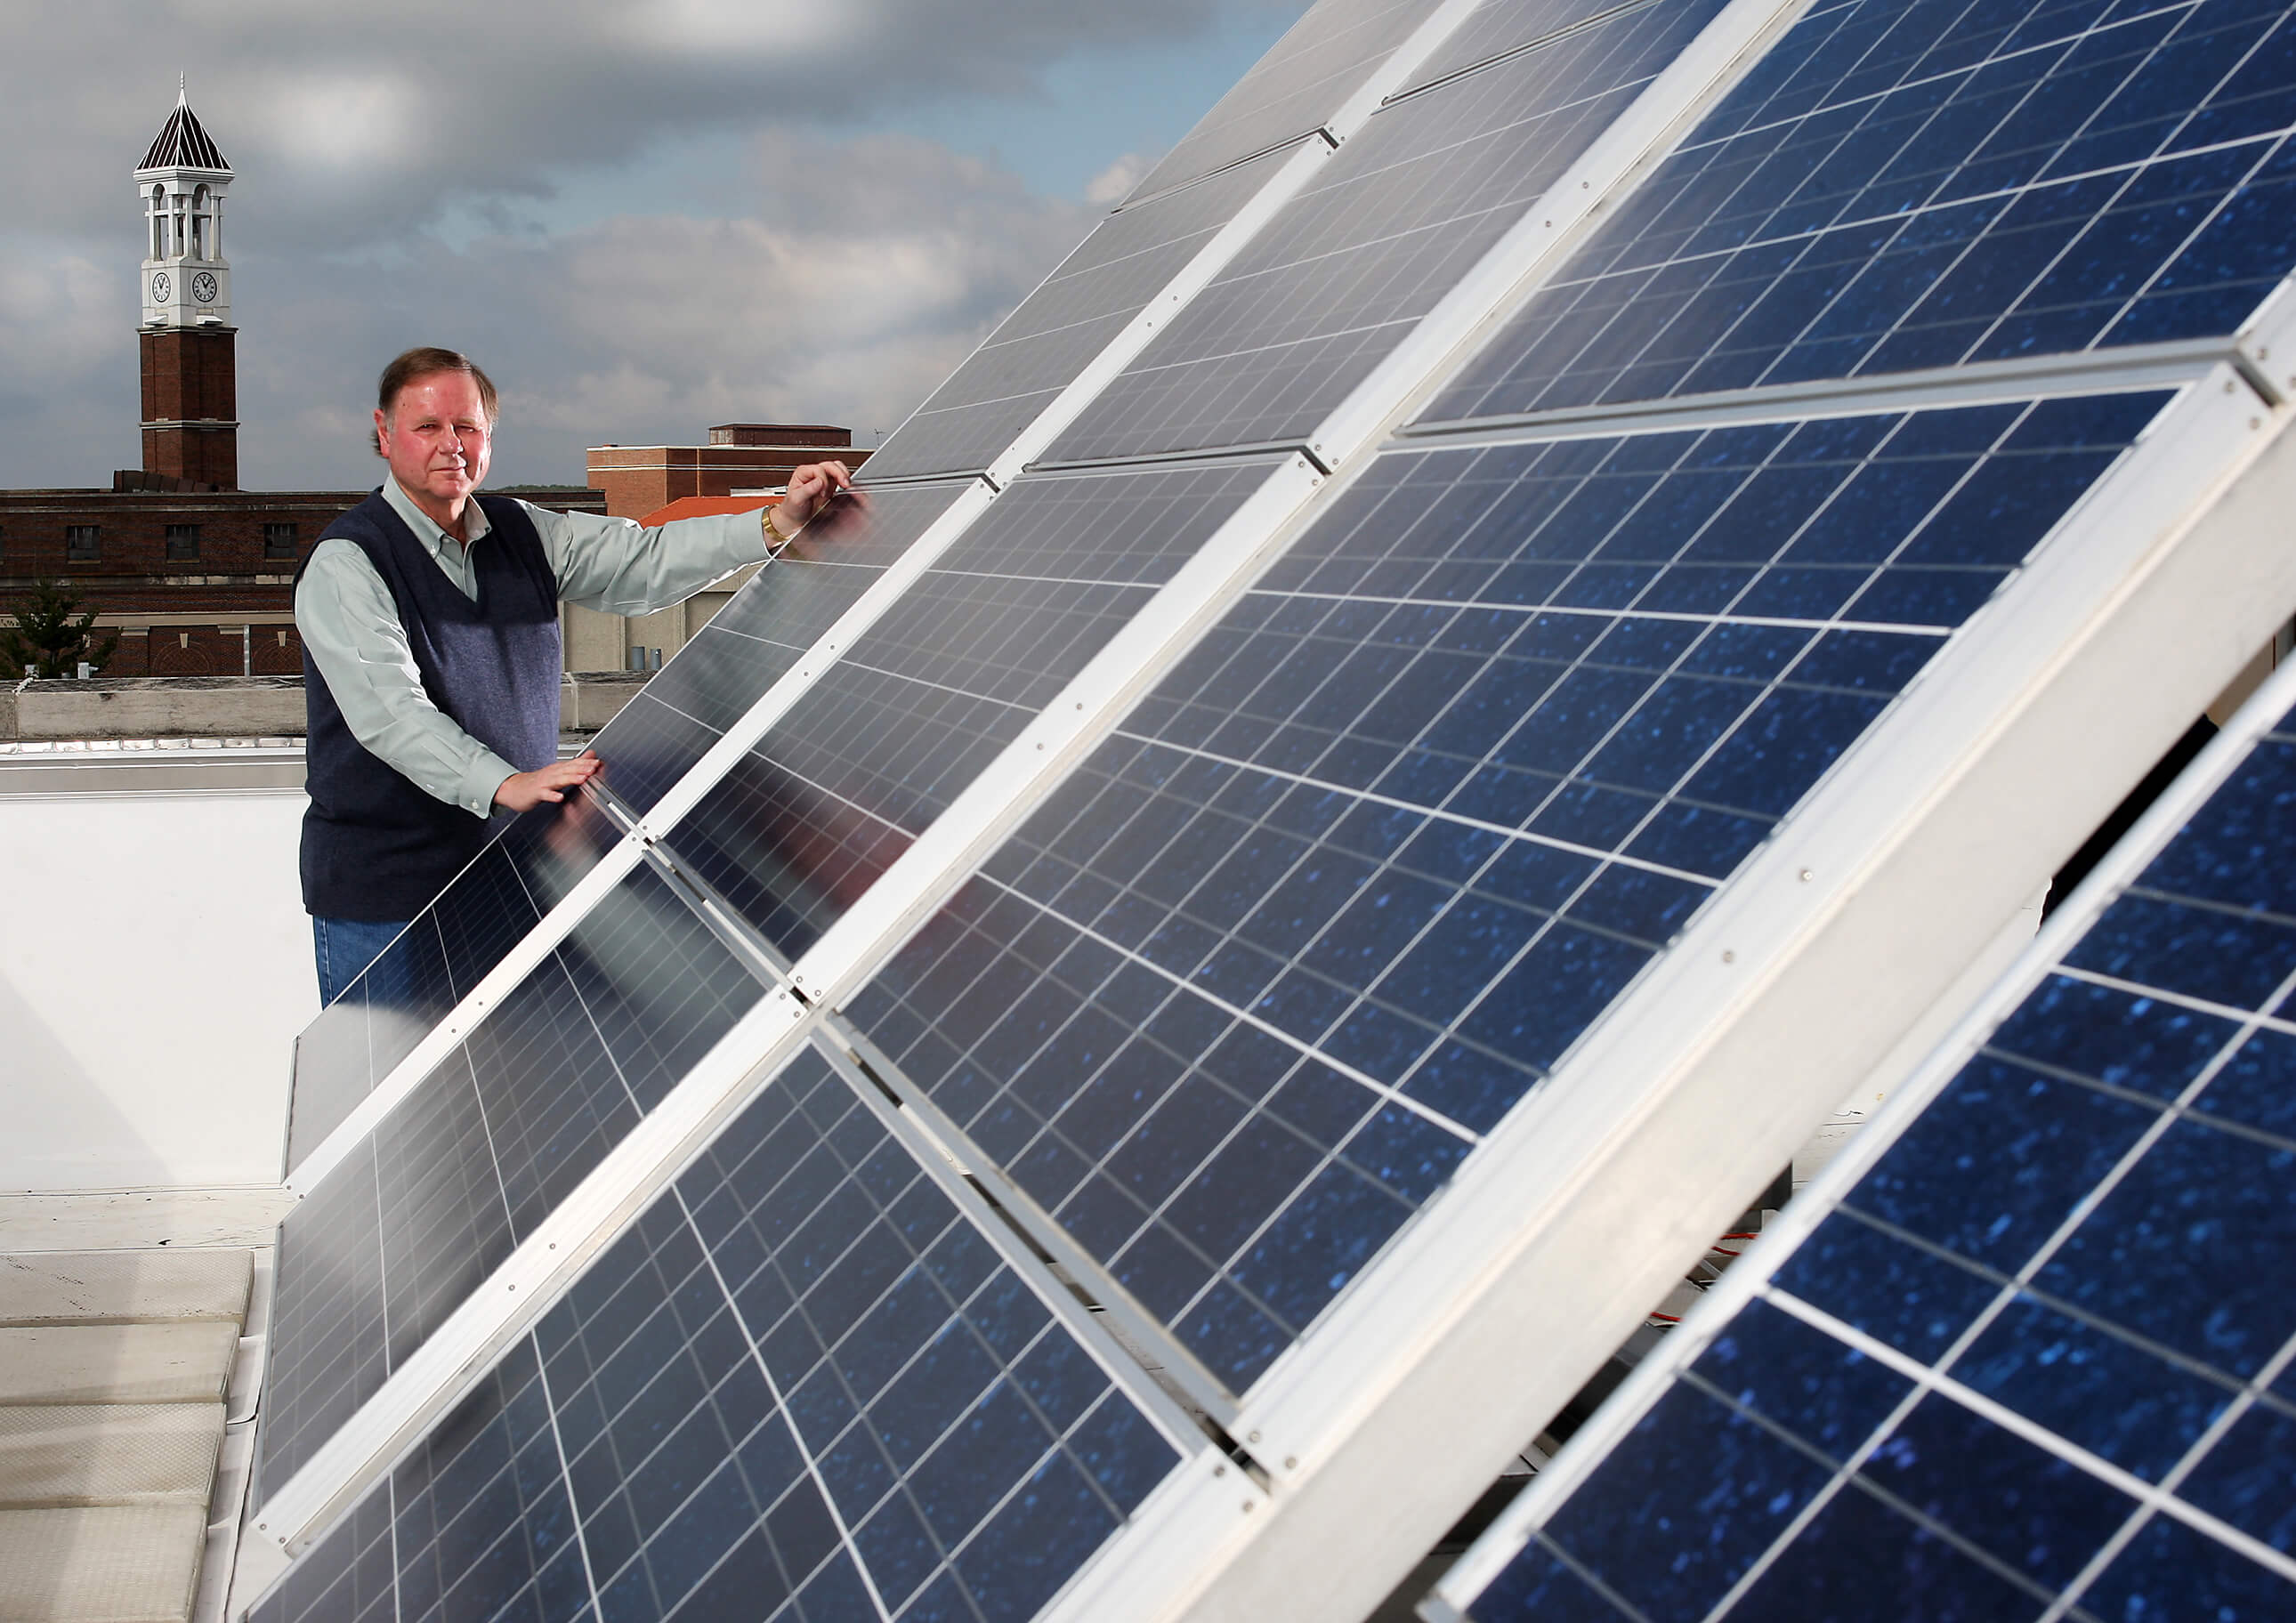 Chances Of Saving With Solar Energy Greater For Indiana